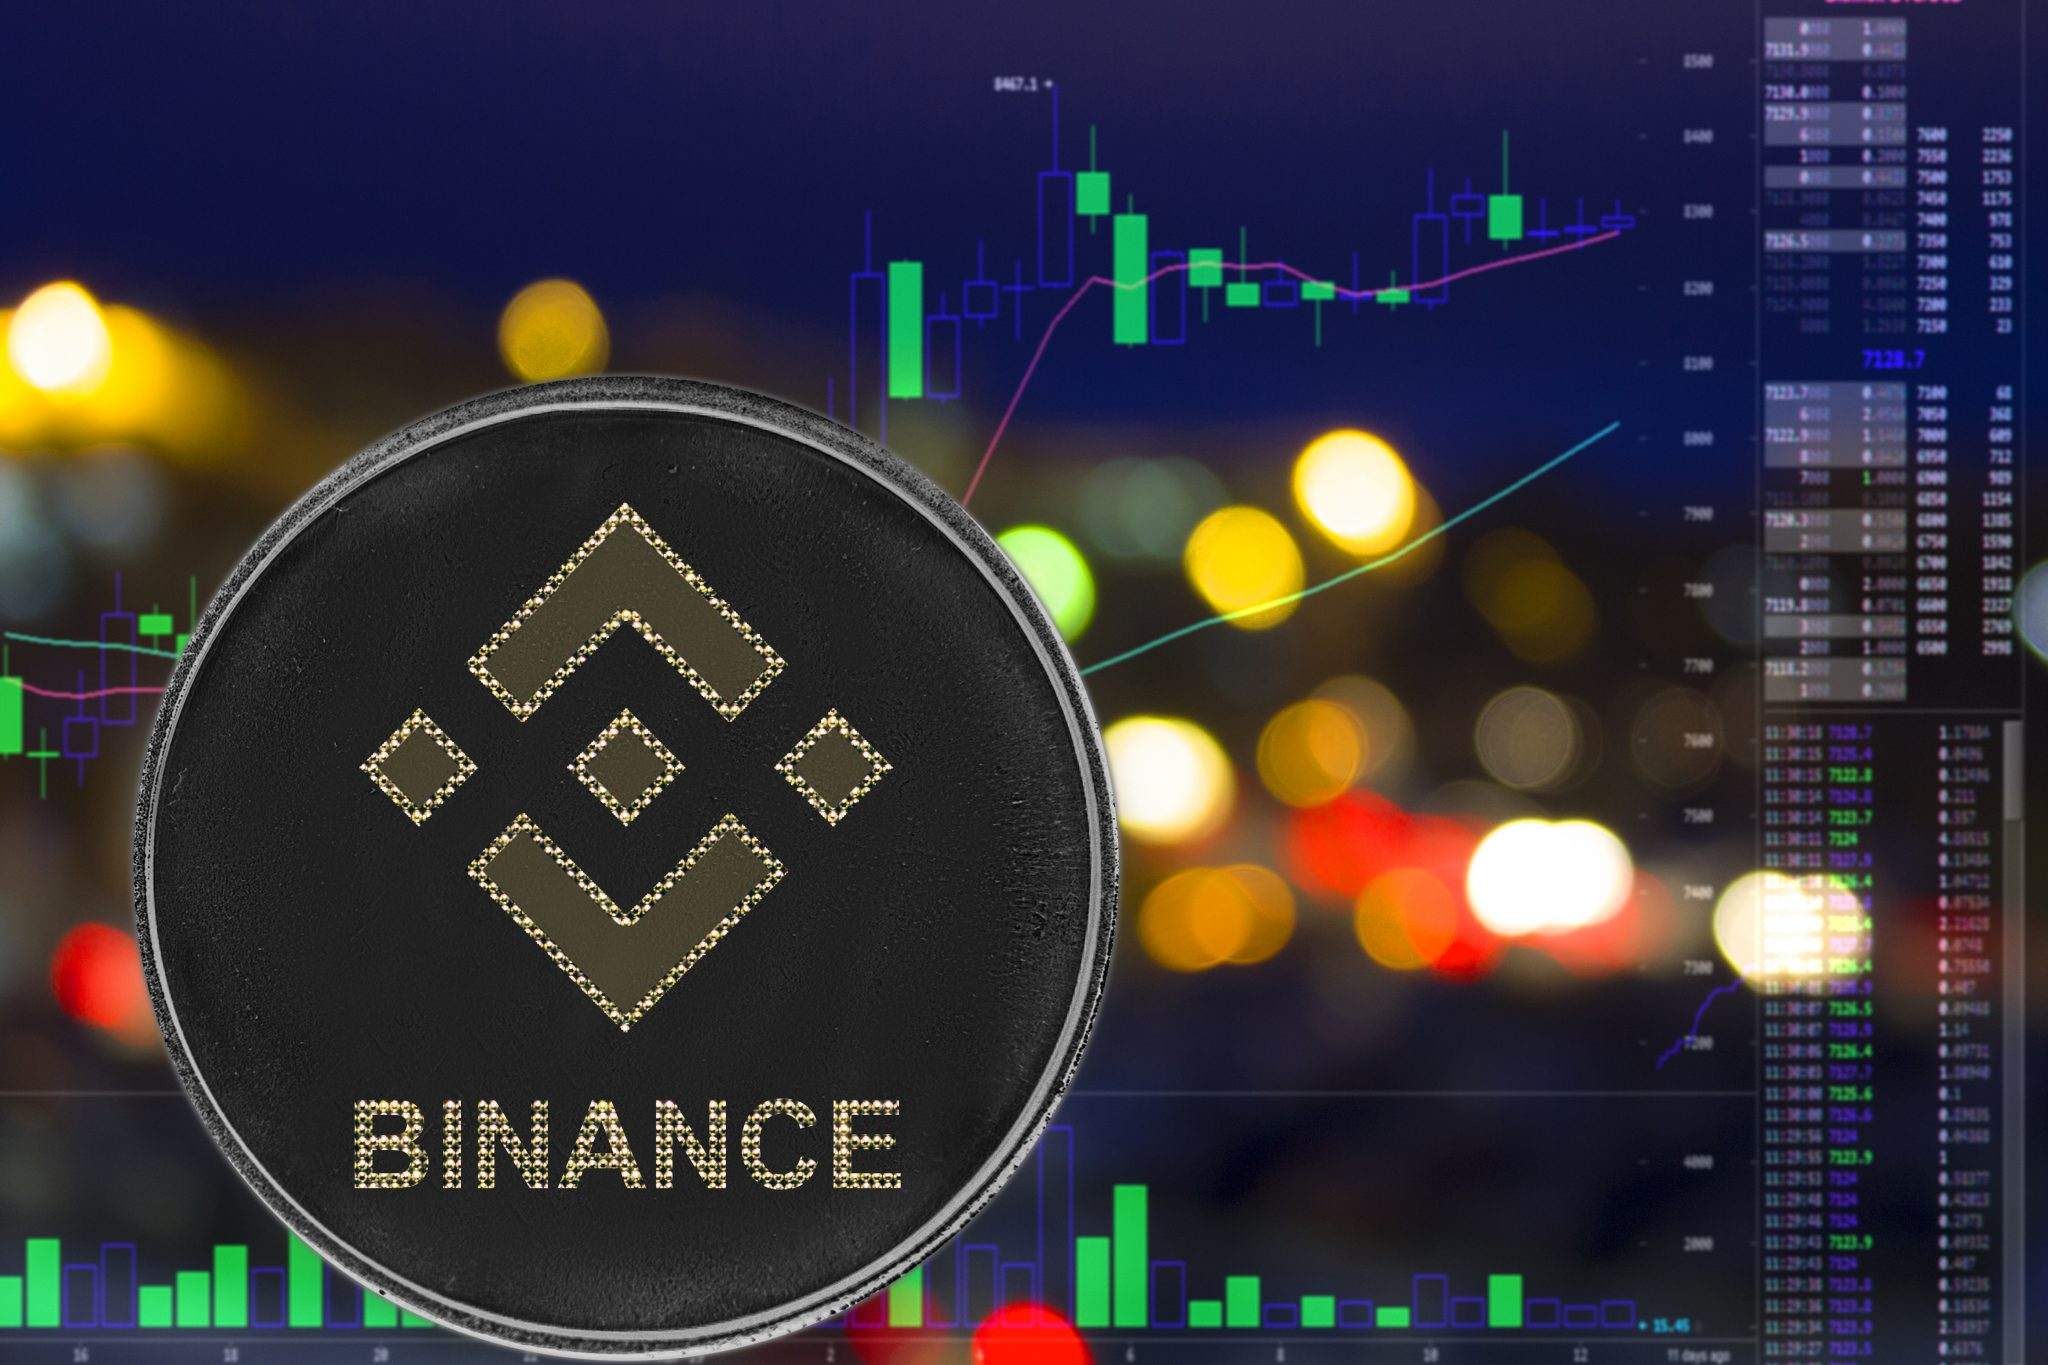 Coin cryptocurrency binance on night city background and chart.